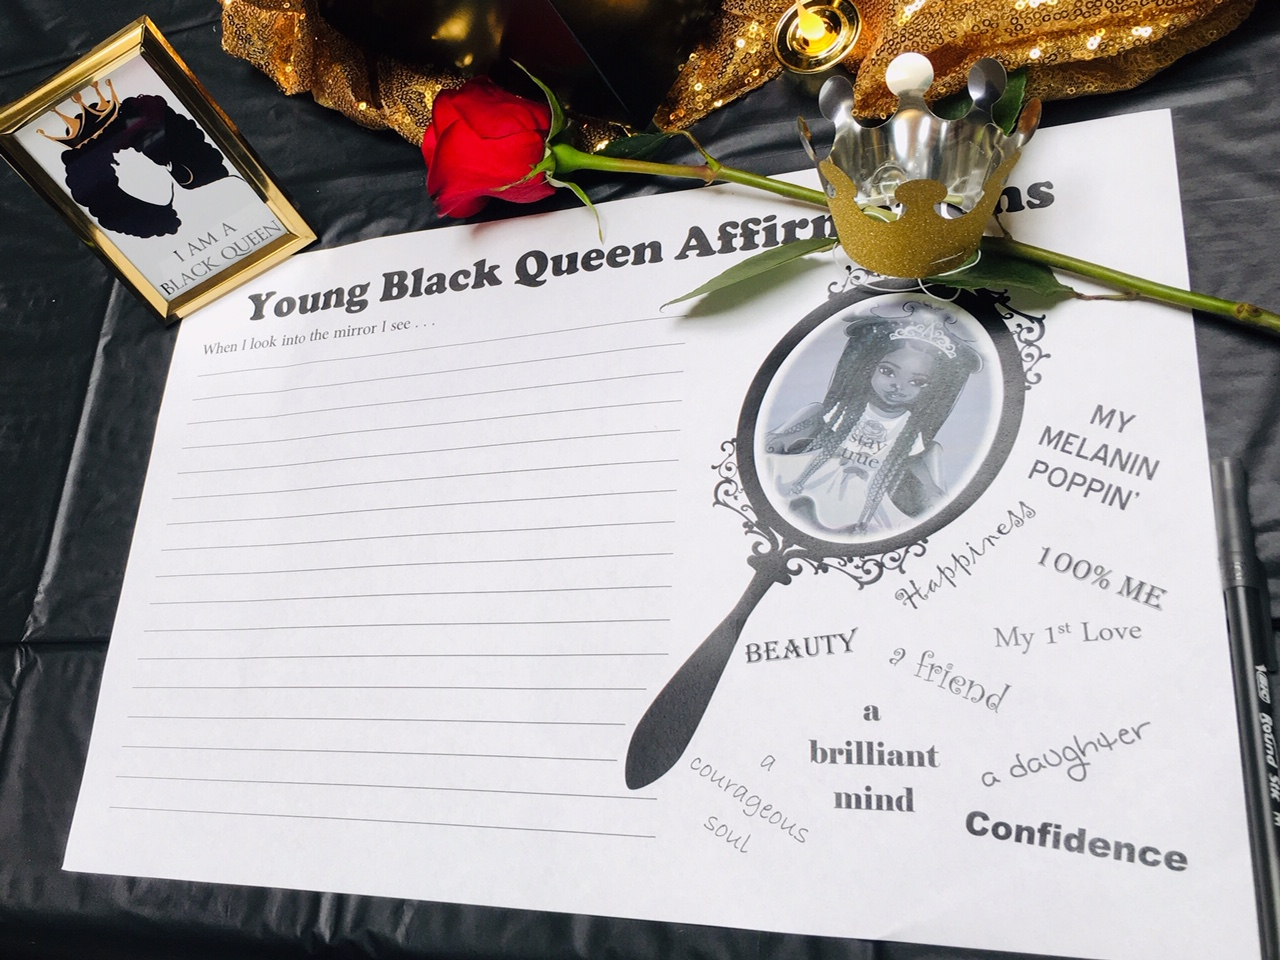 Young black queen affirmations